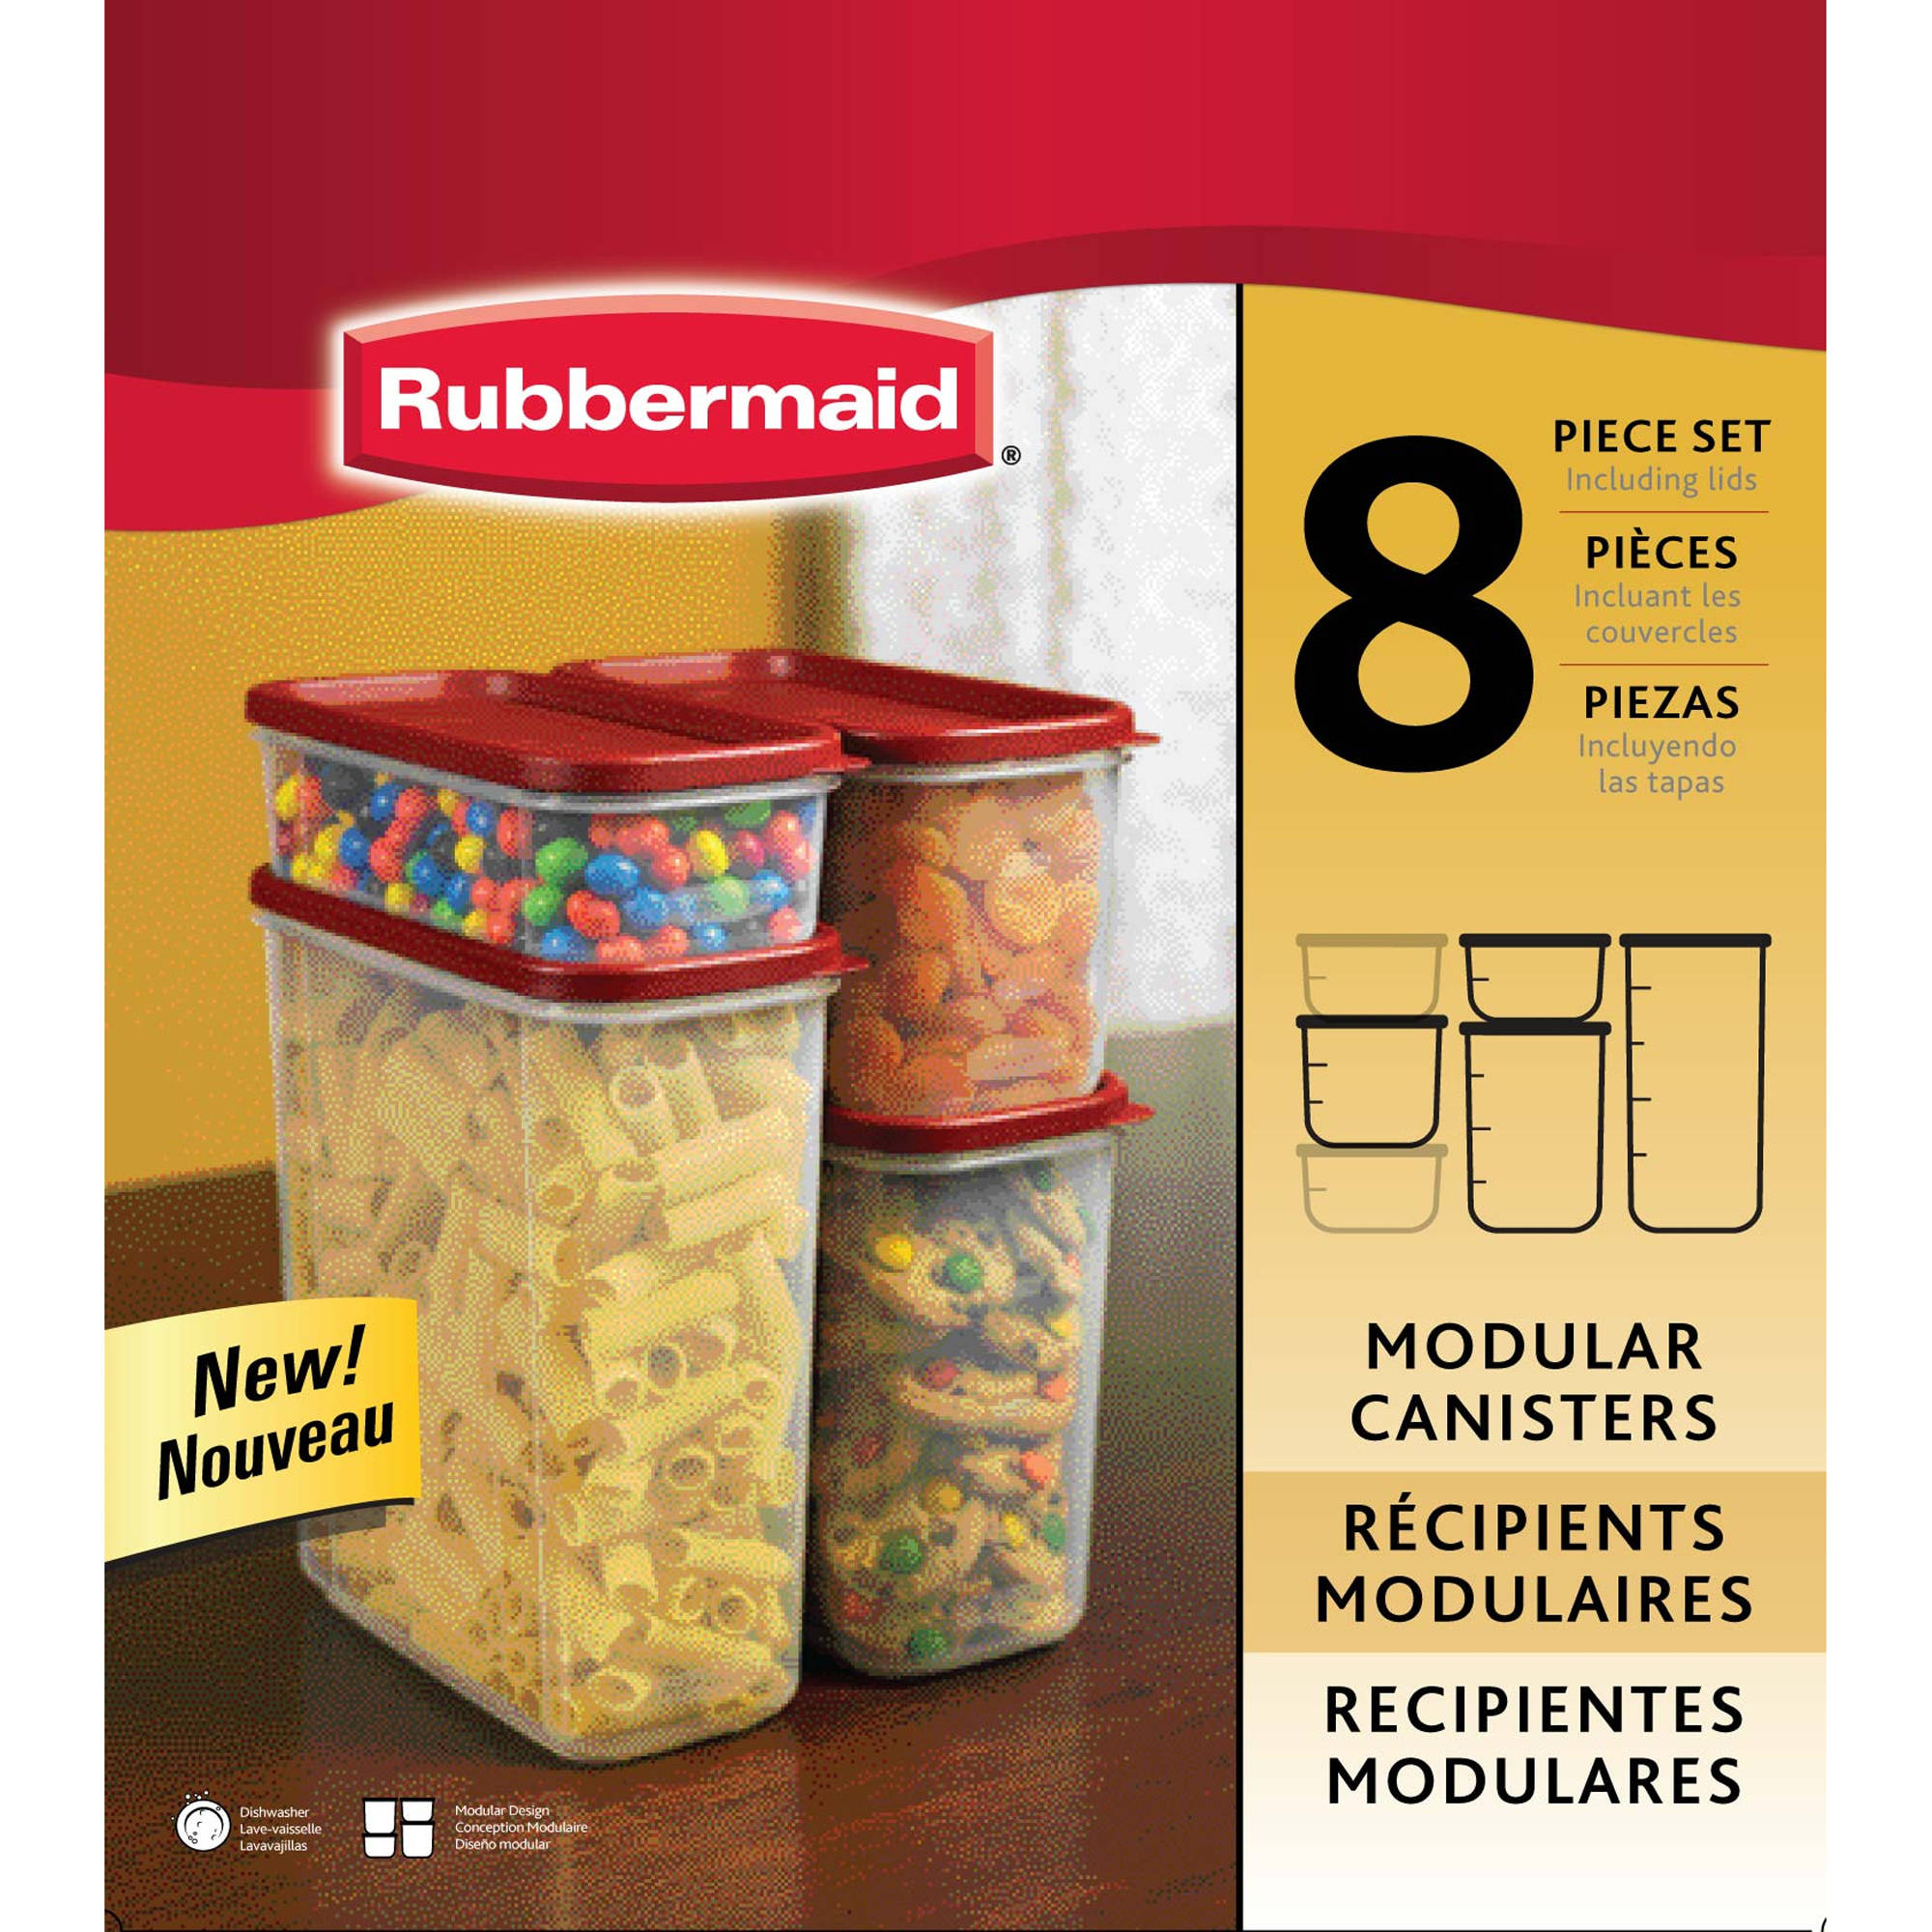 Rubbermaid Modular Canisters, Food Storage Container, BPA-free, 8-piece Set